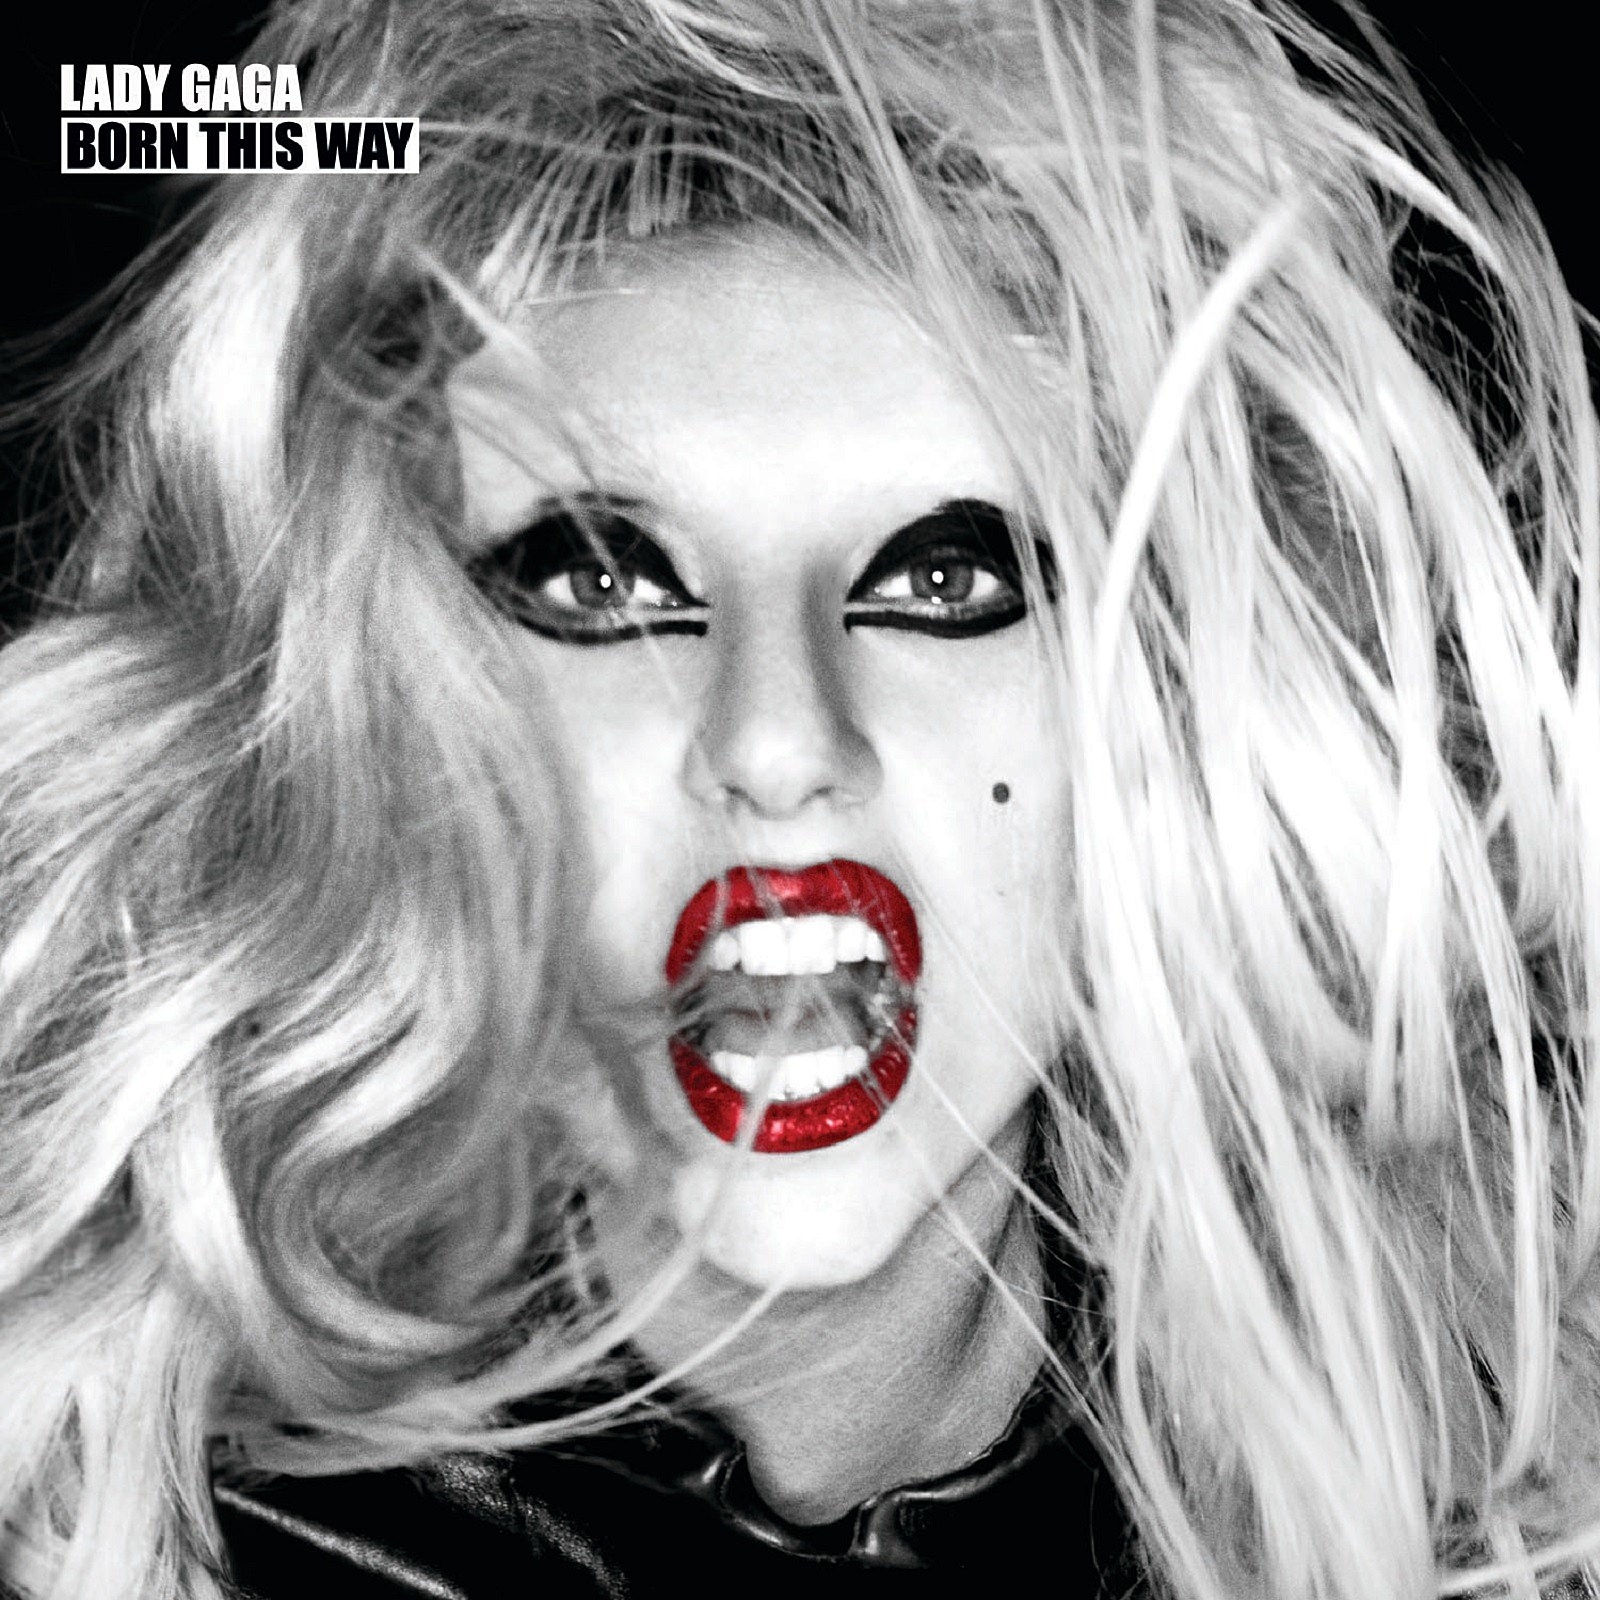 lady-gaga-born-this-way-deluxe.jpg